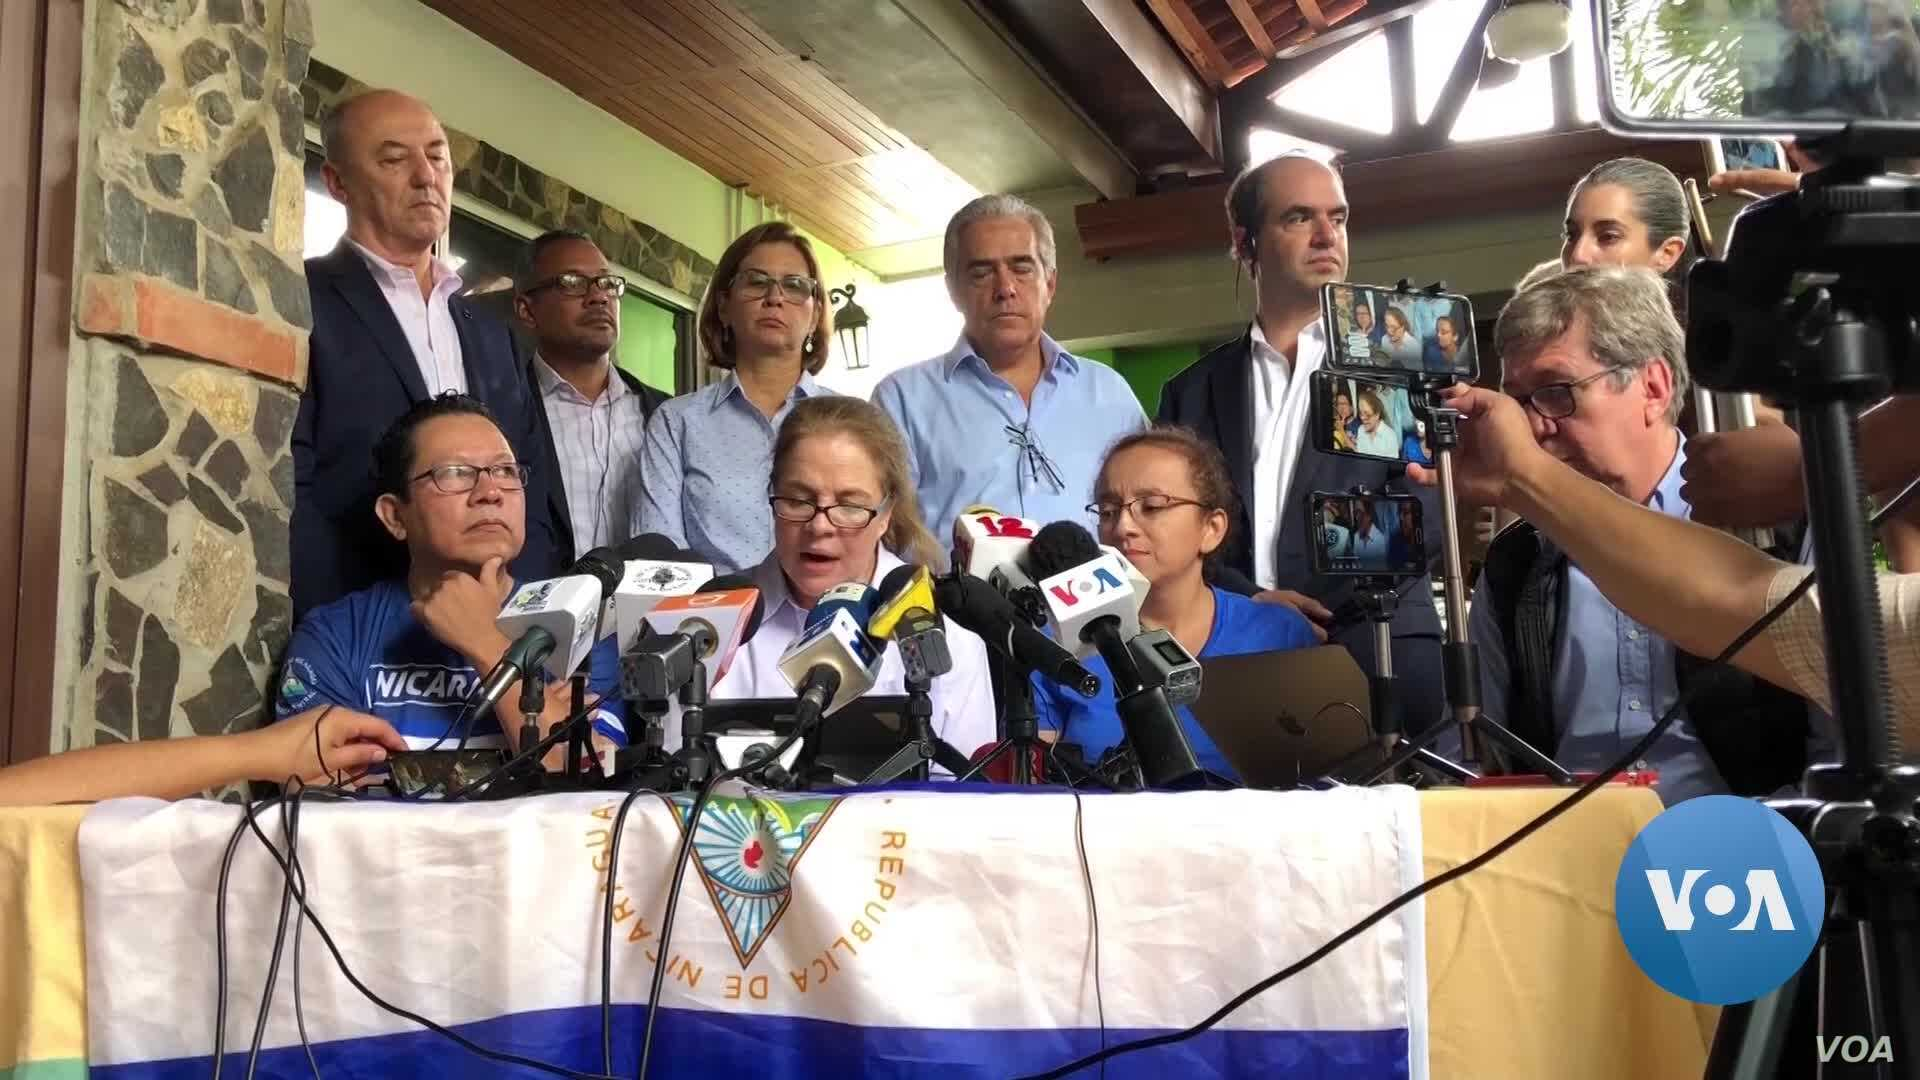 Nicaragua Releases Owner, Anchor of Top News Station